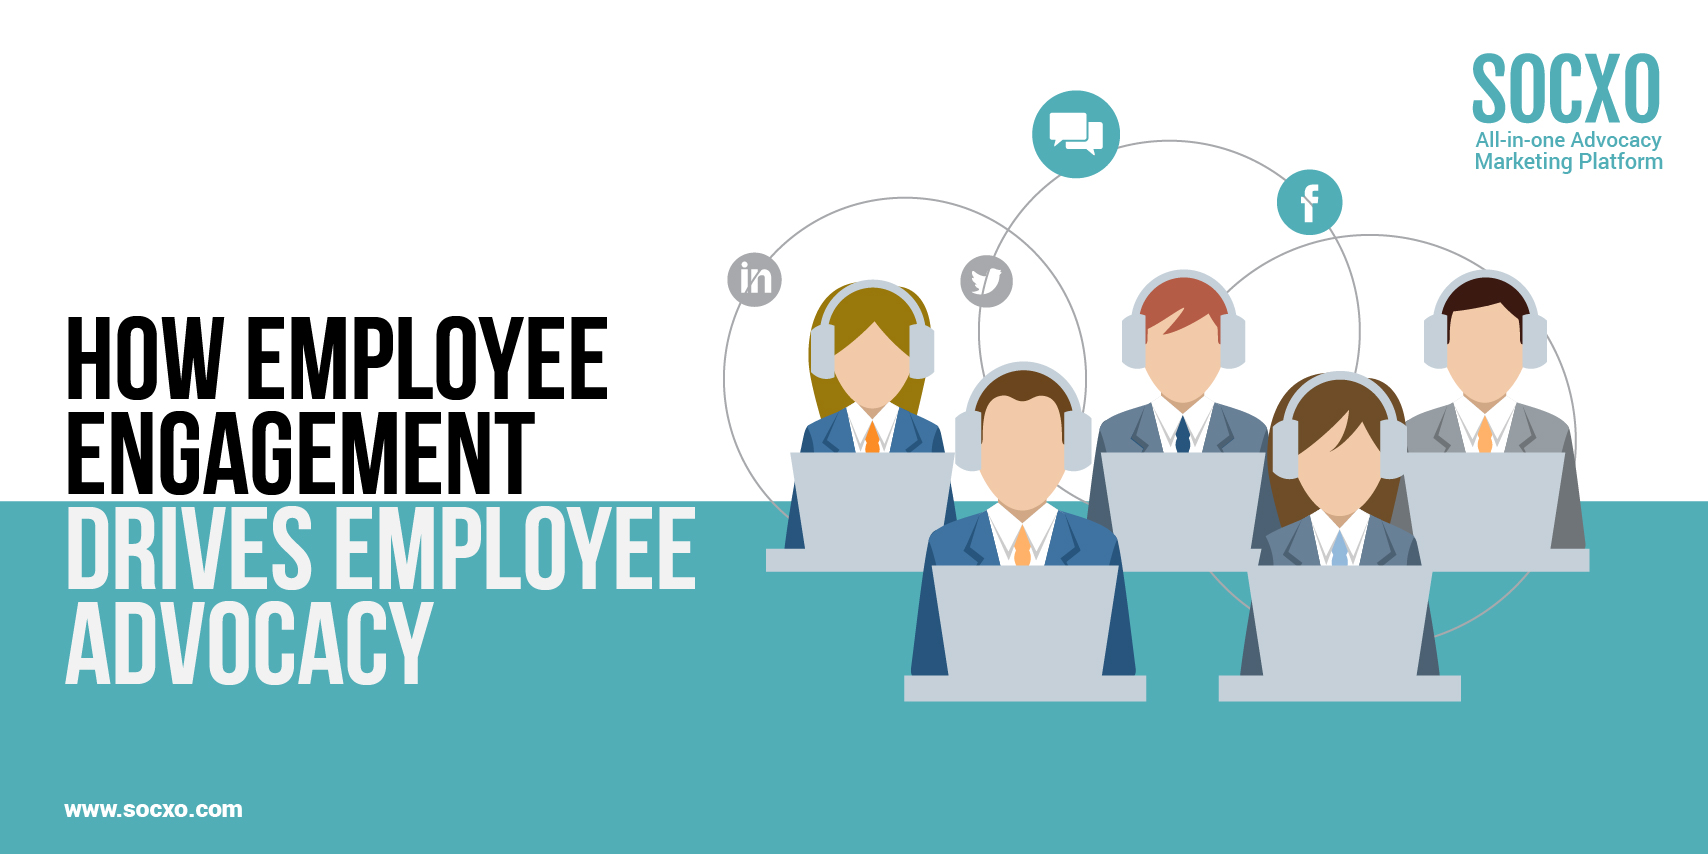 How Employee Engagement Drives Employee Advocacy